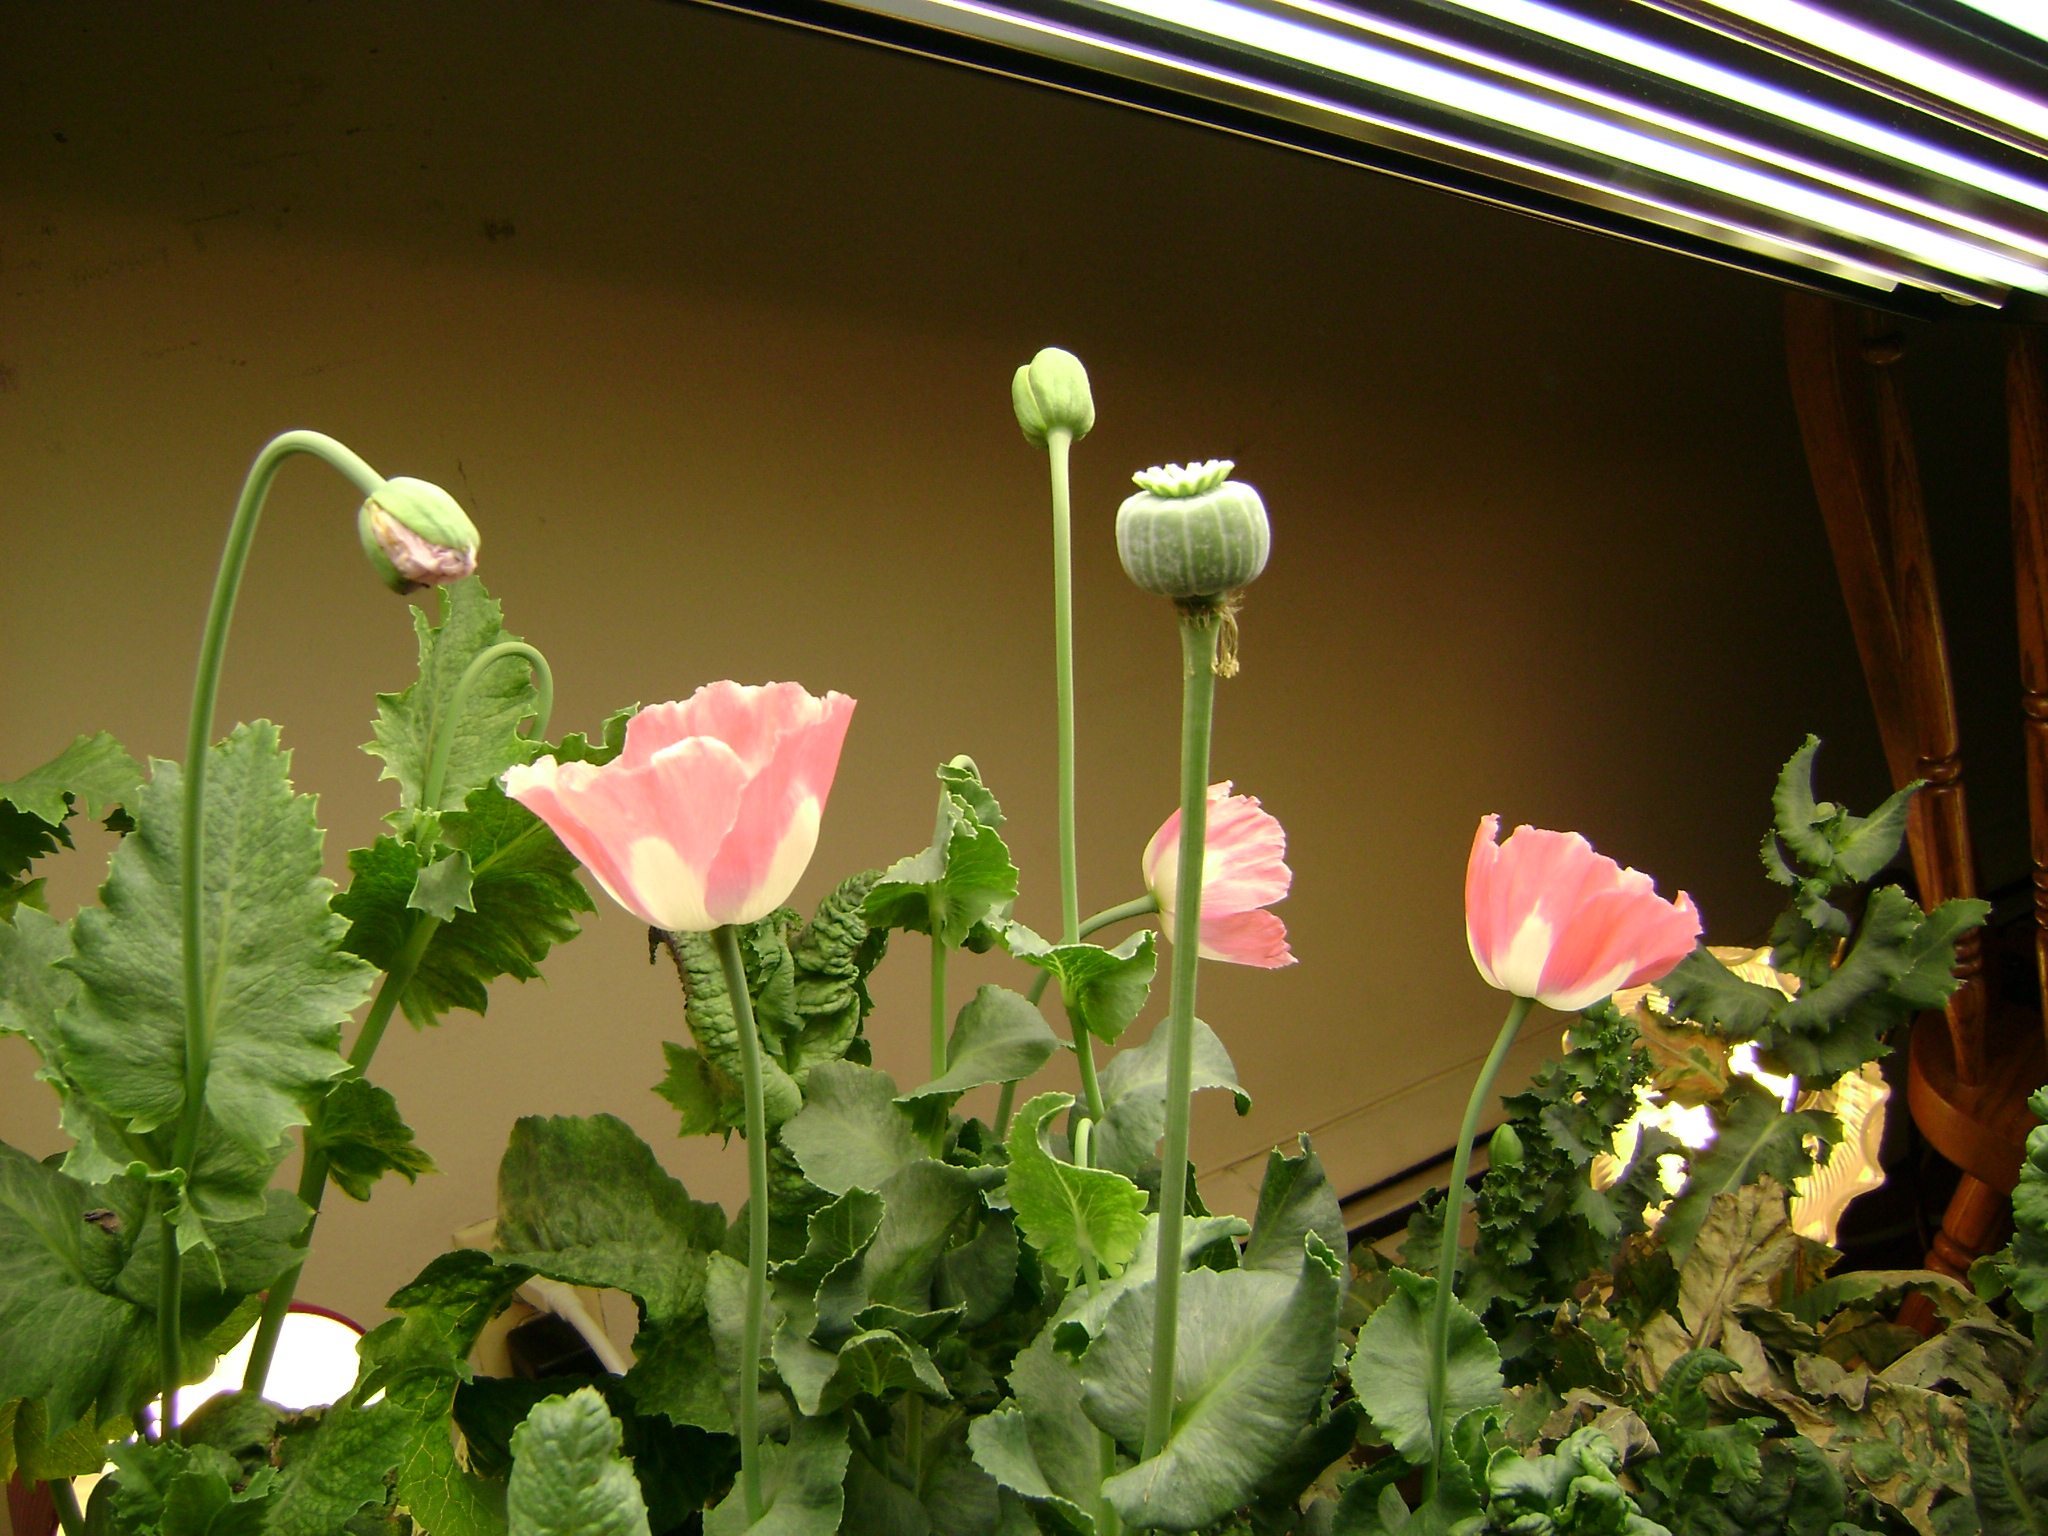 Hydroponic Poppies Grow Log Page 4 Poppies Opium Etc